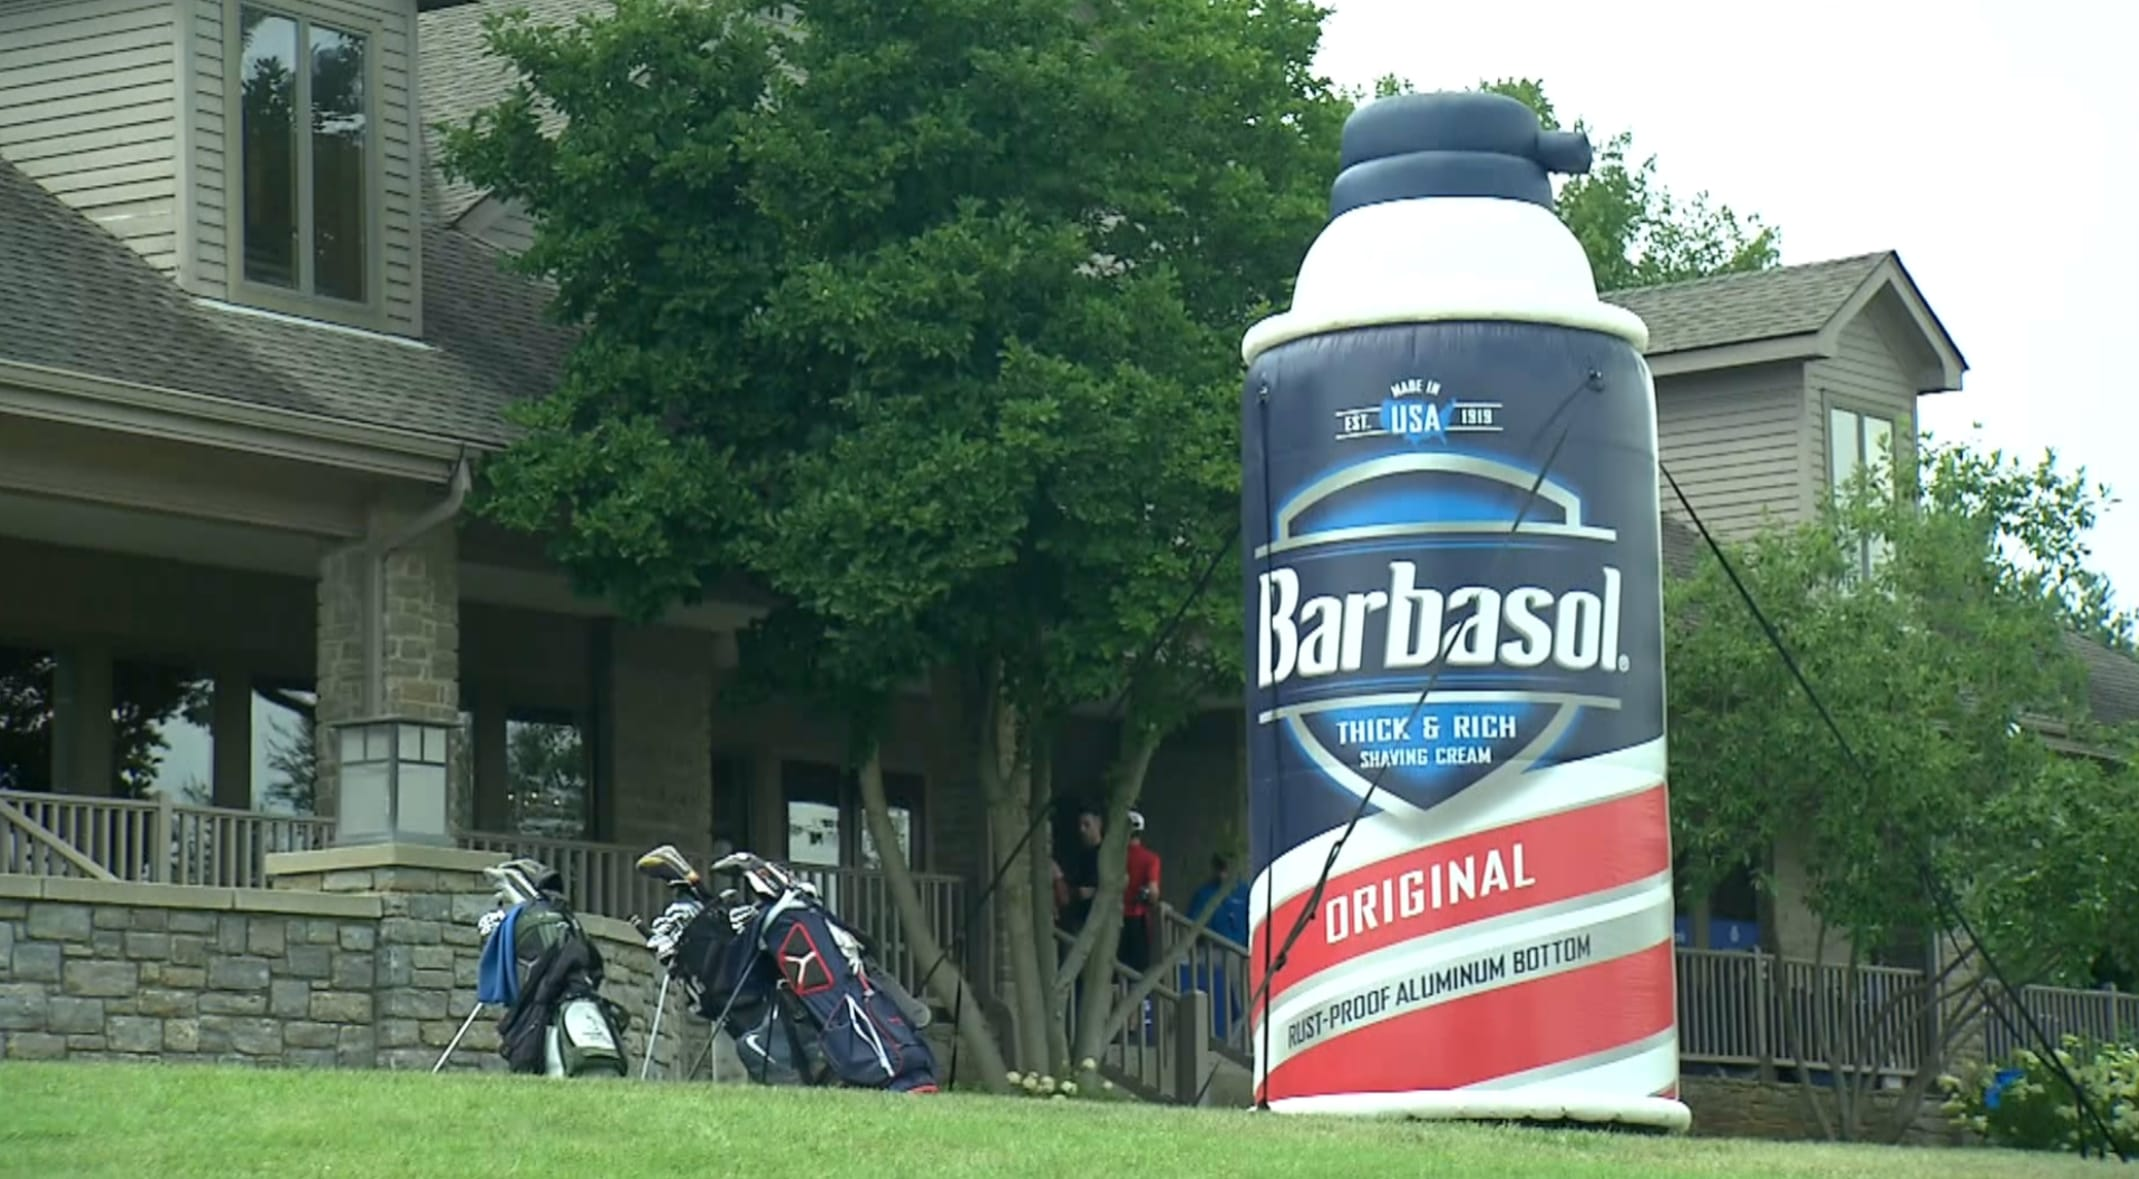 David Toms Round 4 Recap at 2019 Barbasol Championship - PGA